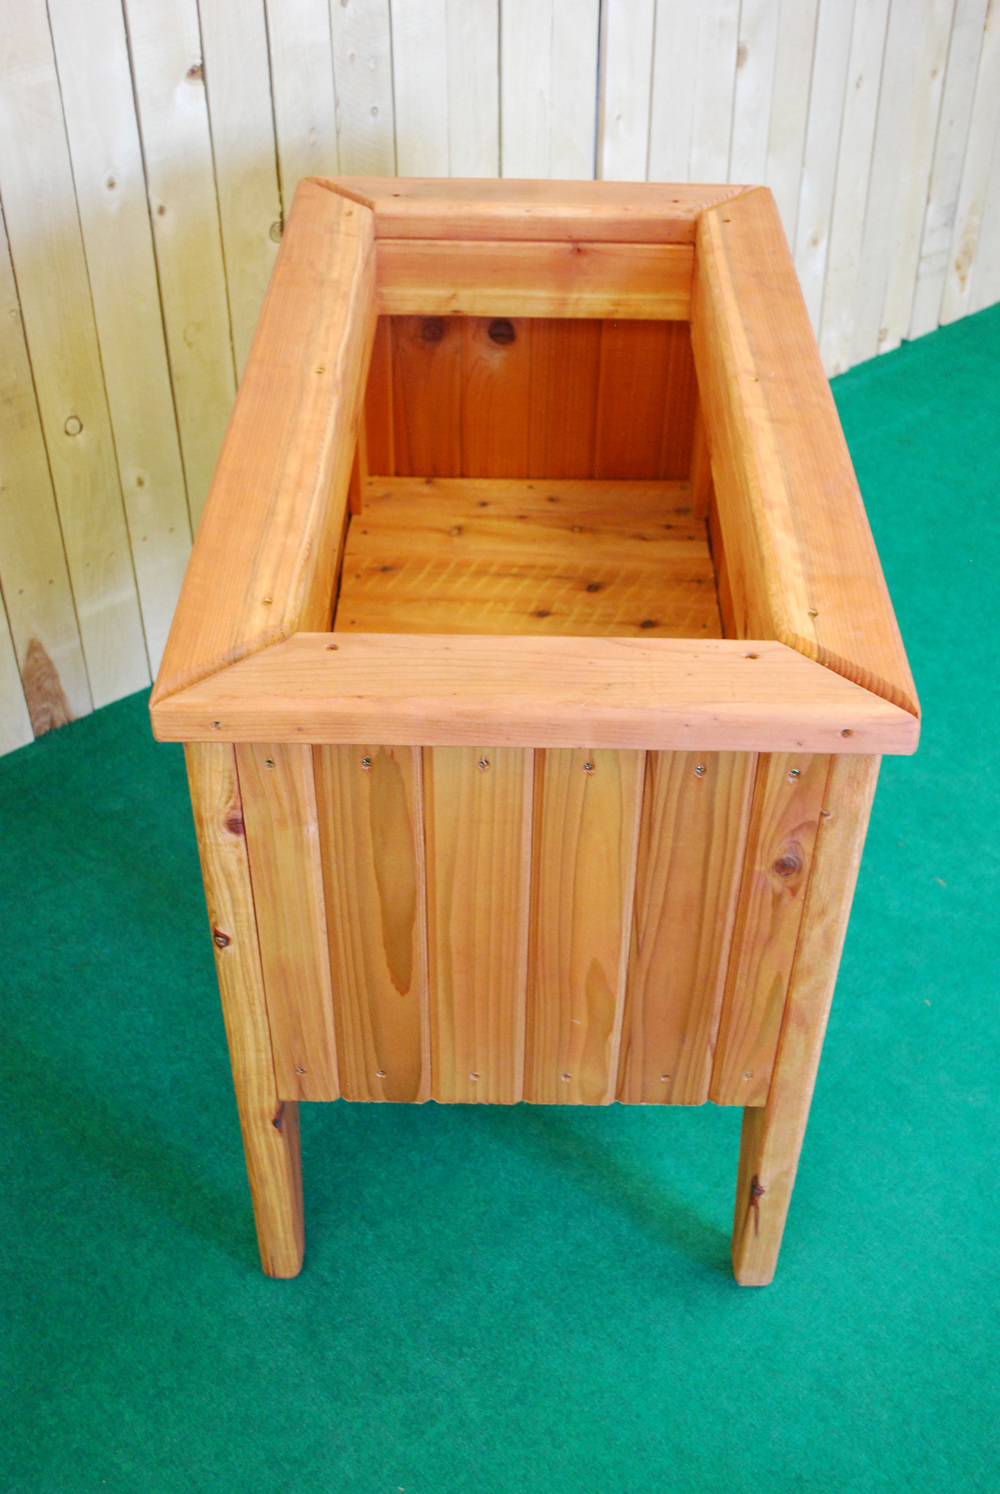 redwood planter with legs